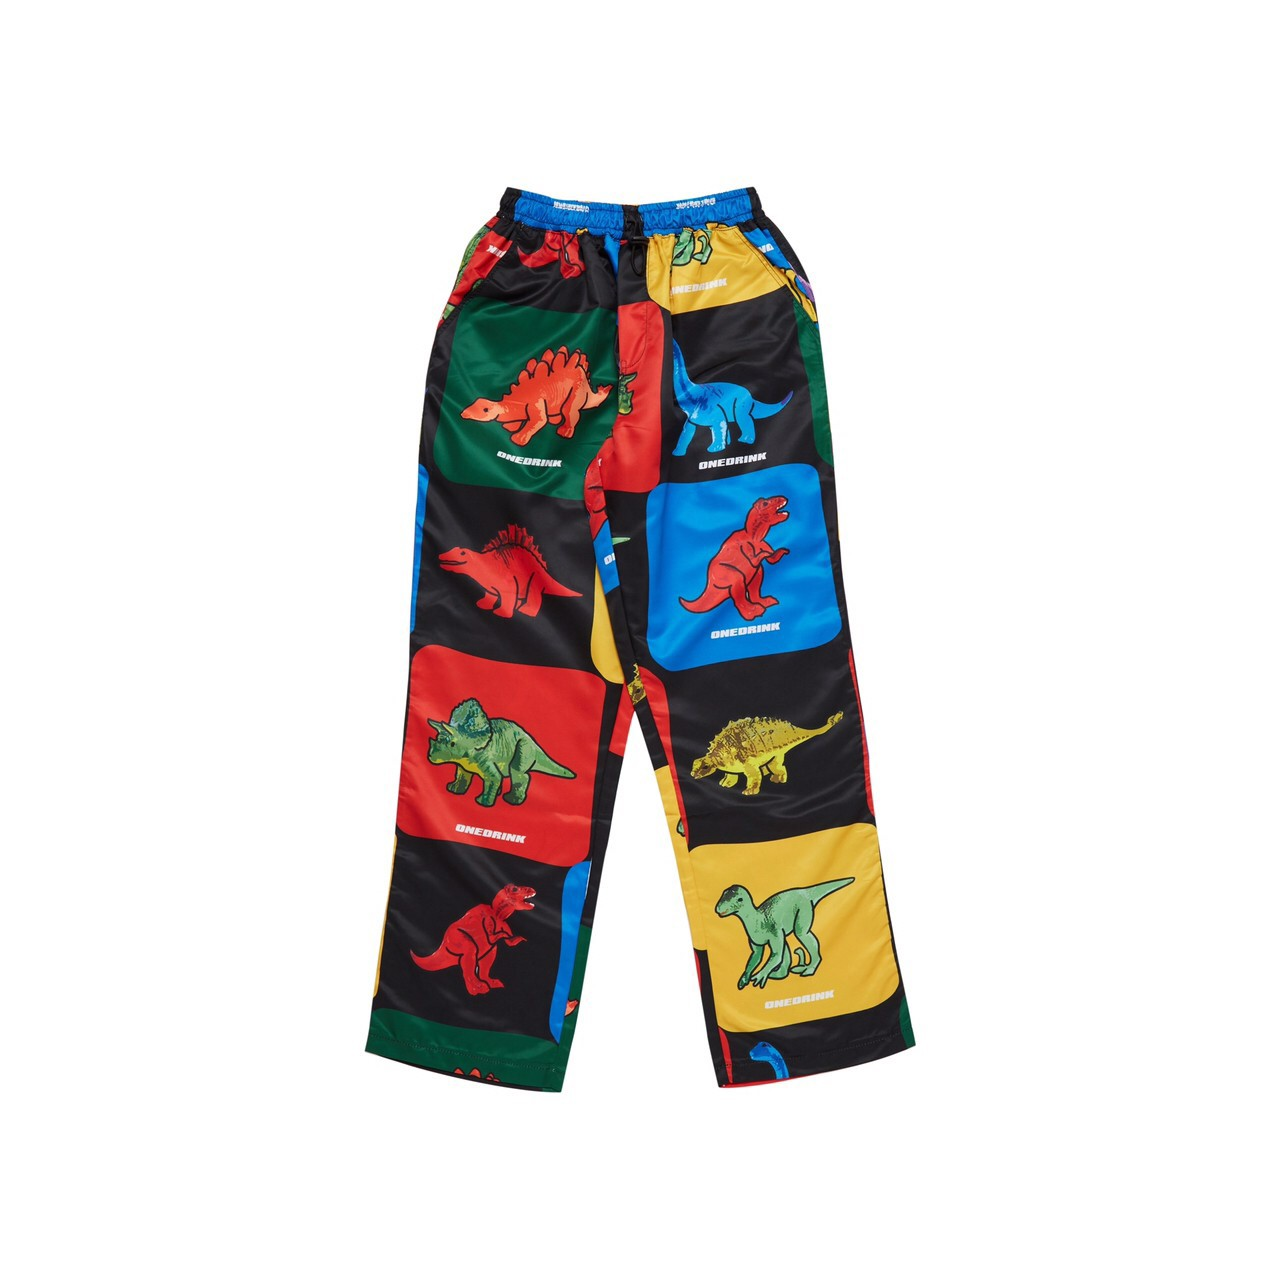 ONE DRINK AND WE GO HOME DINOSAUR PANTS MULTI